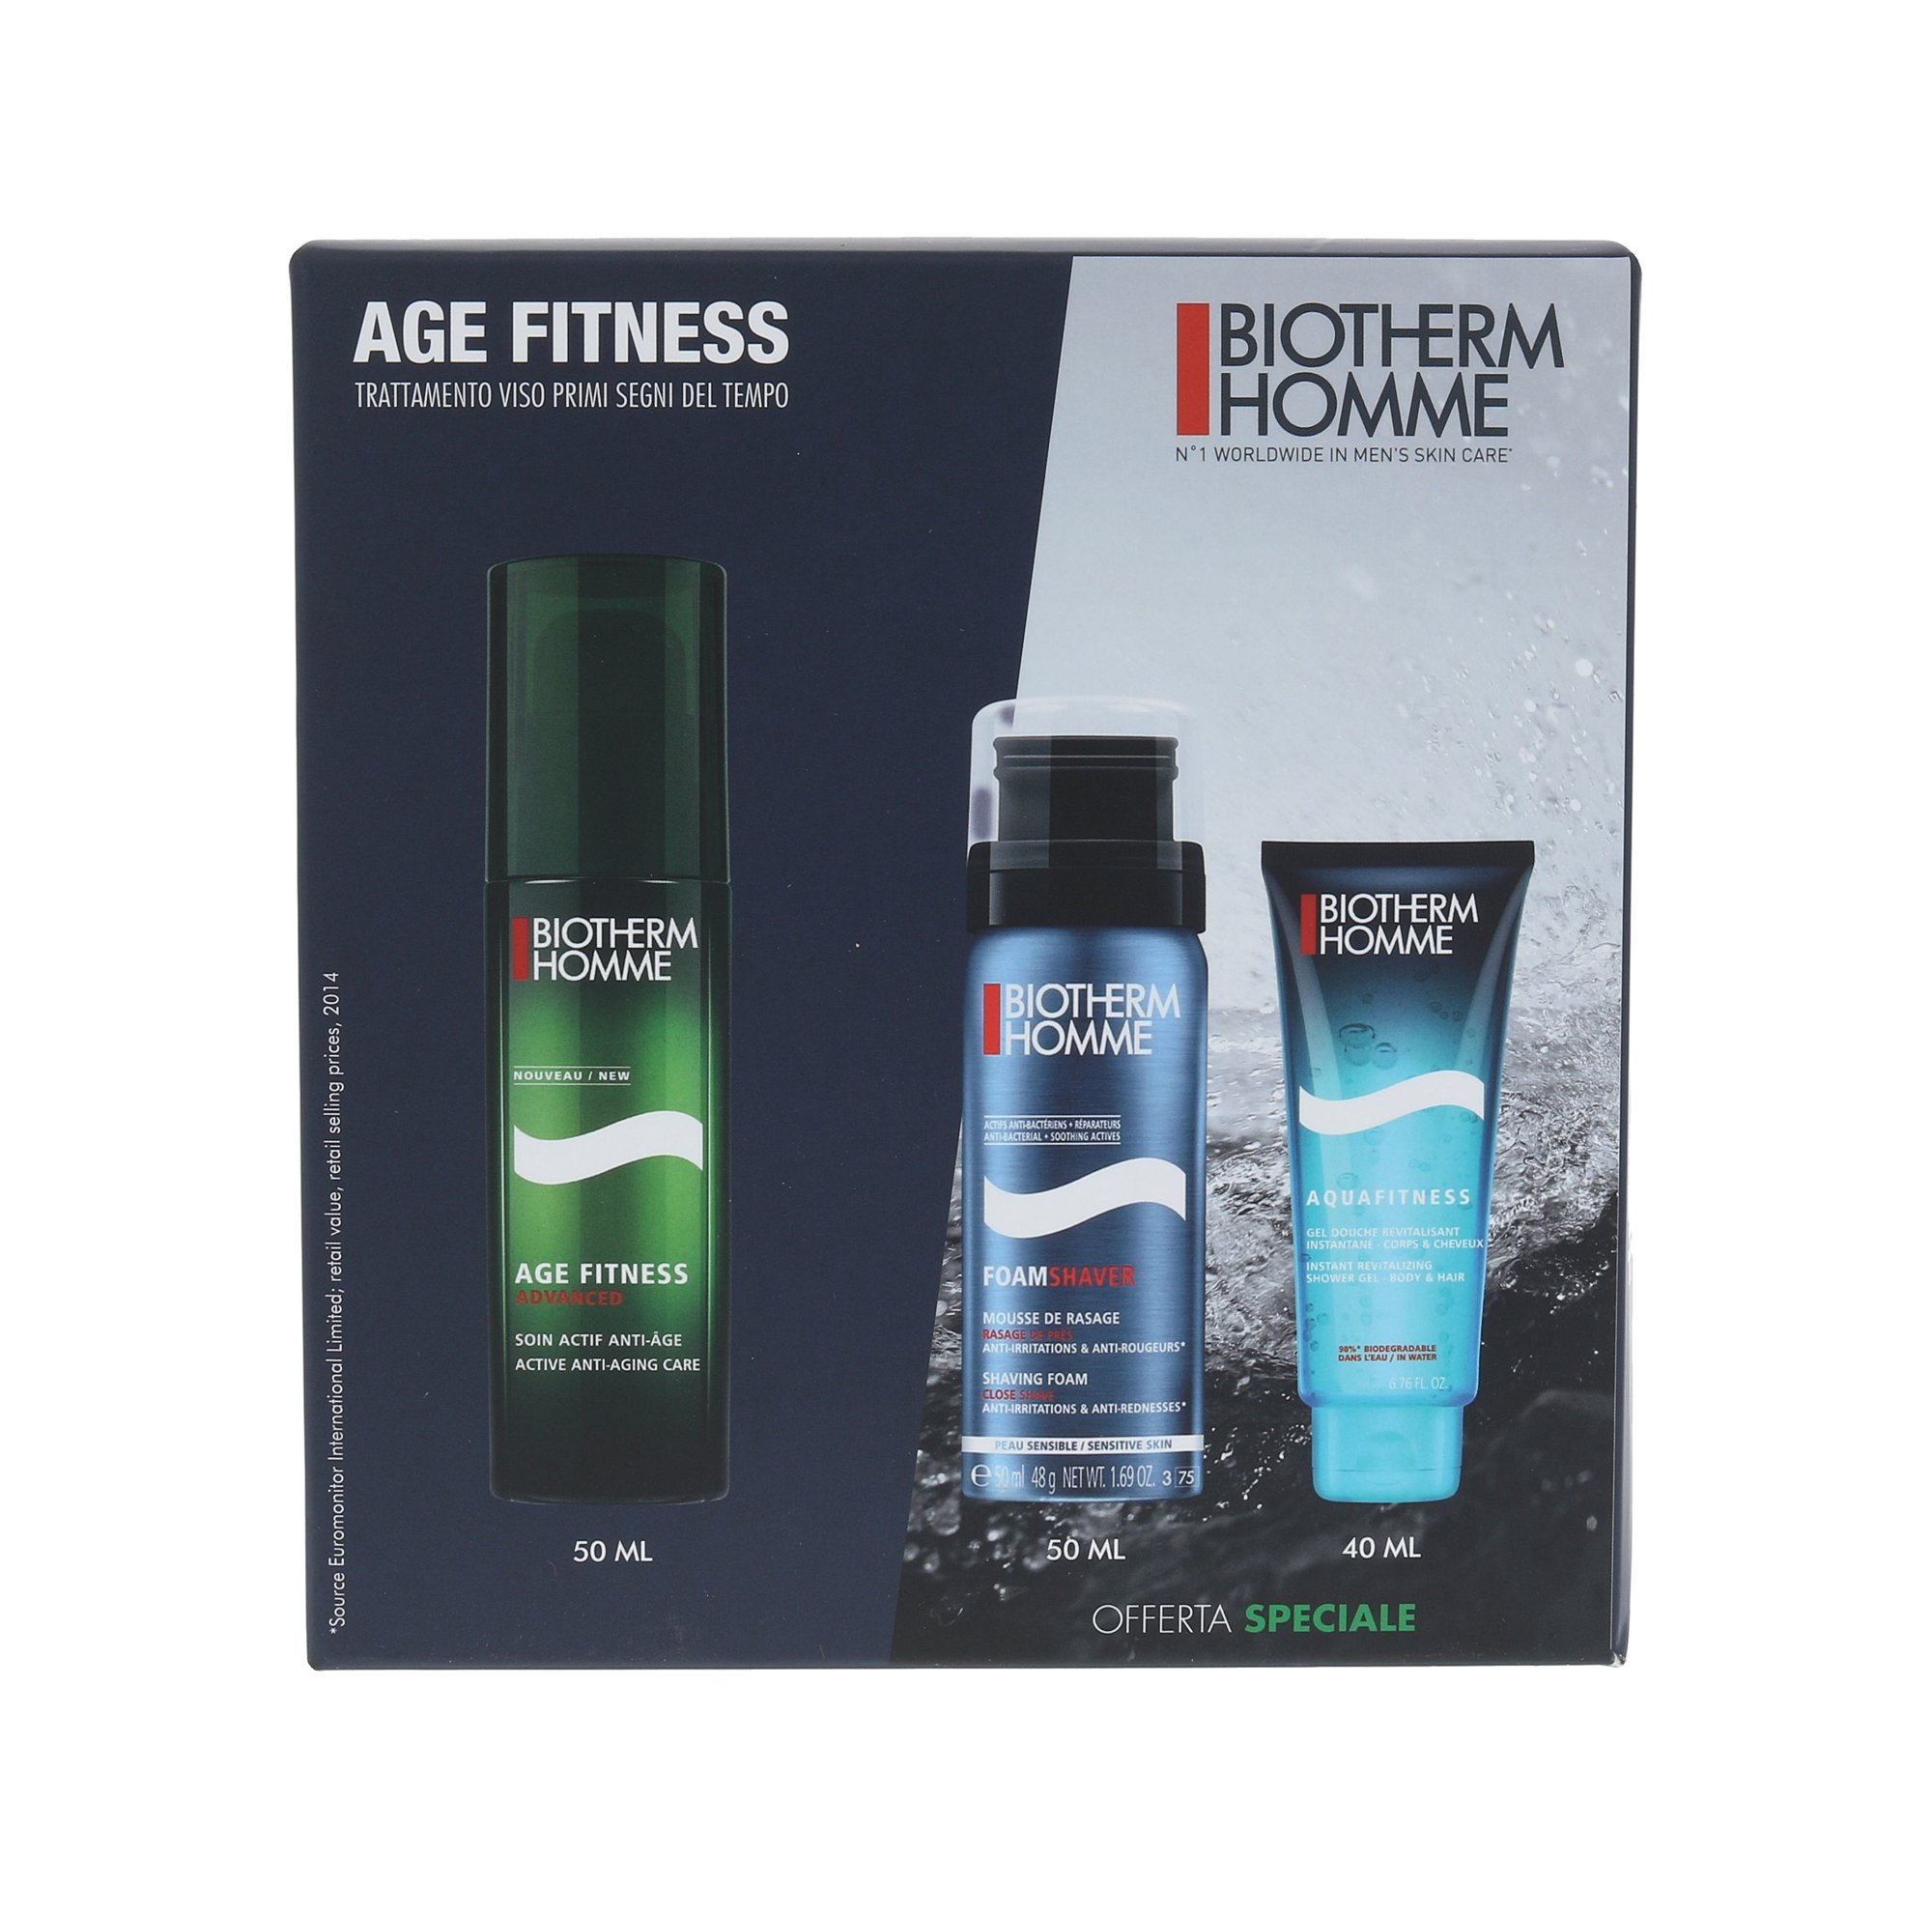 Biotherm Homme Age Fitness Advanced Cosmetic 50ml